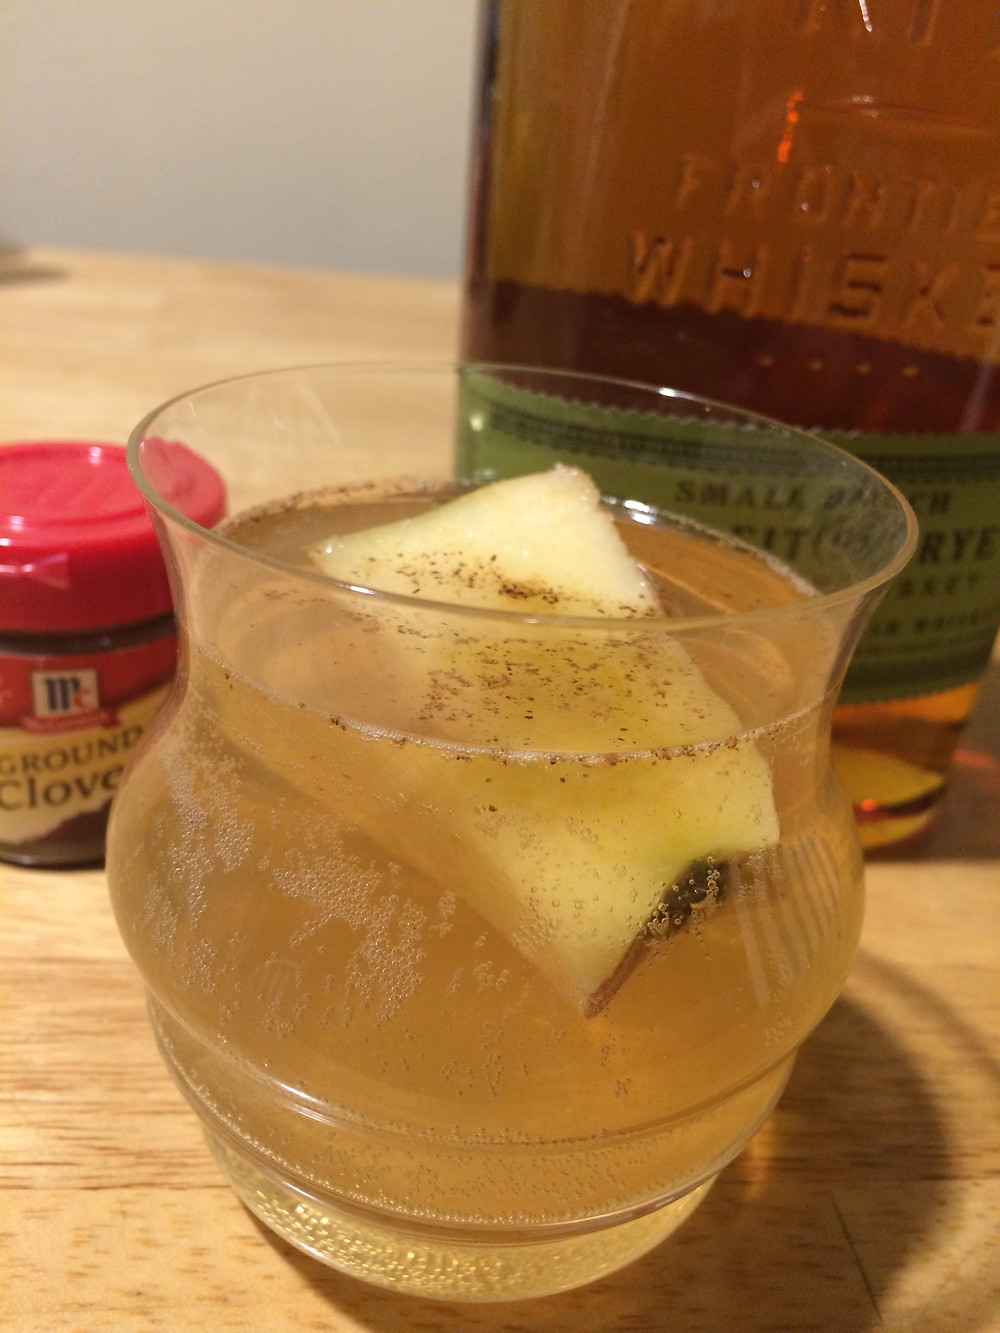 Cocktail made from apple shrub, which was made with vinegar and apple cores